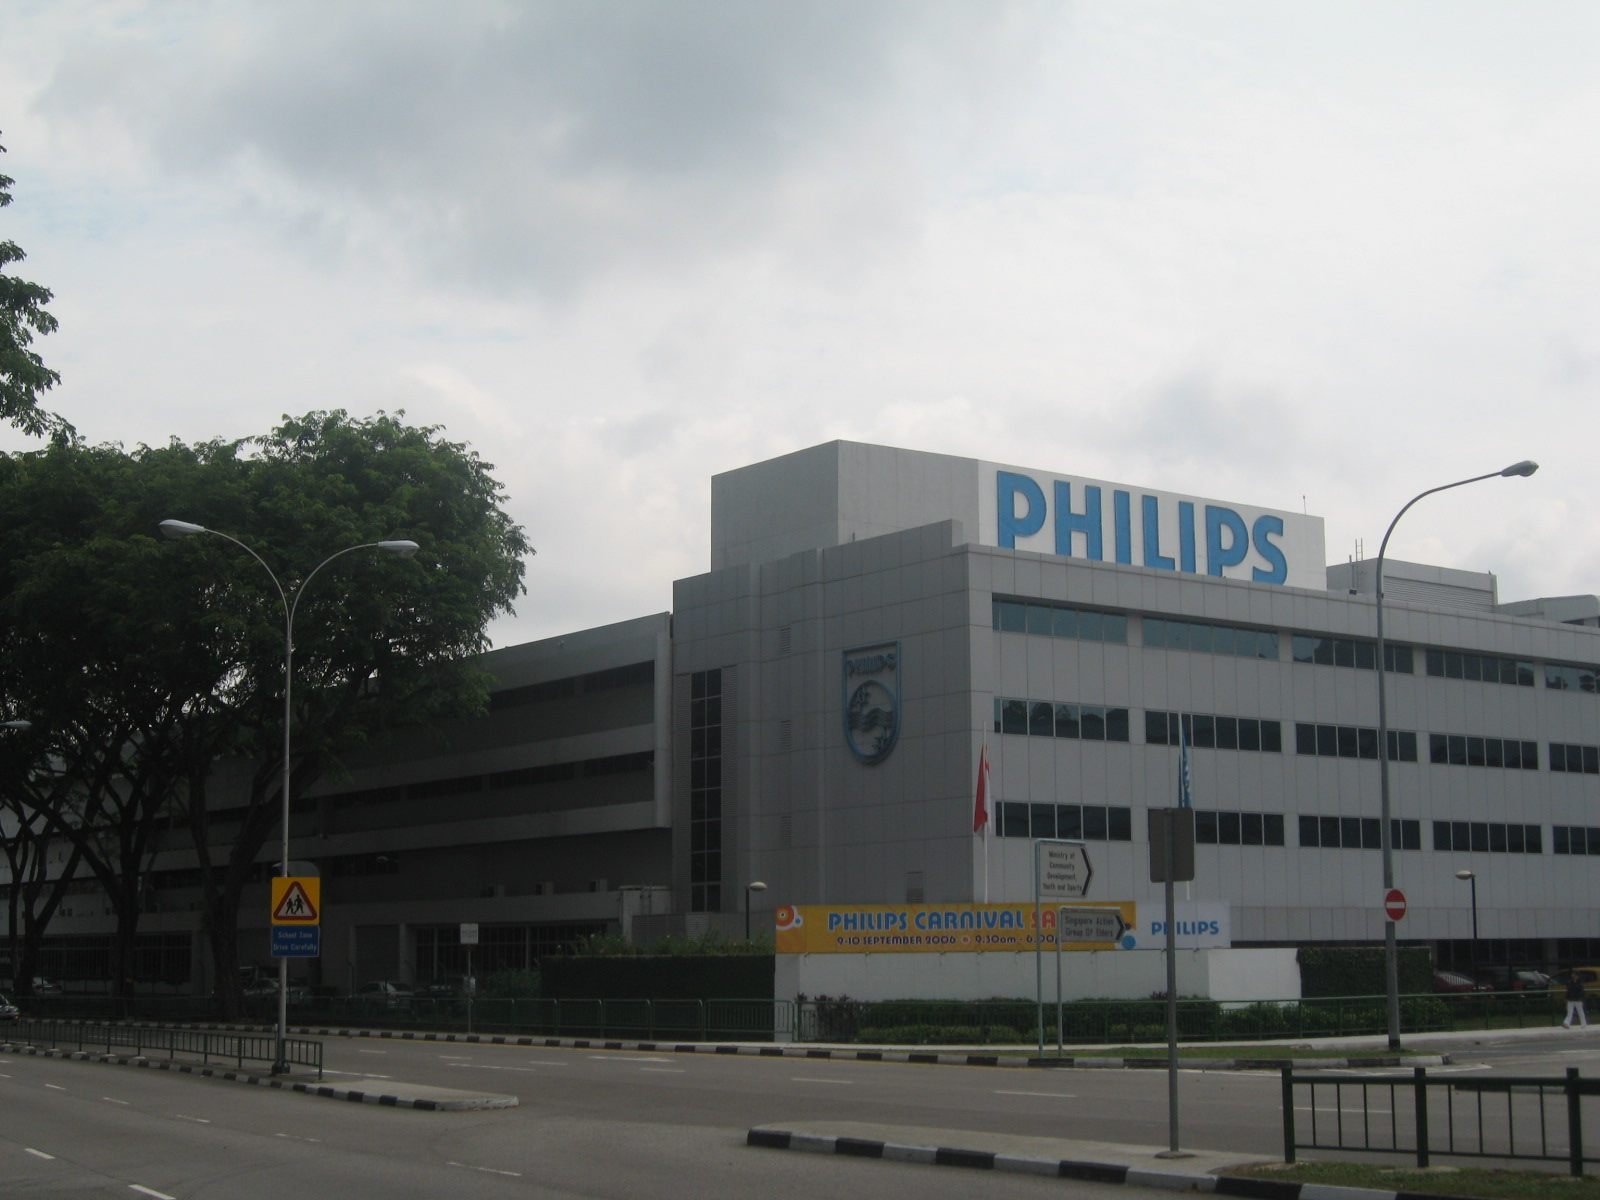 File:Philips Singapore HQ.JPG - Wikipedia, the free encyclopedia